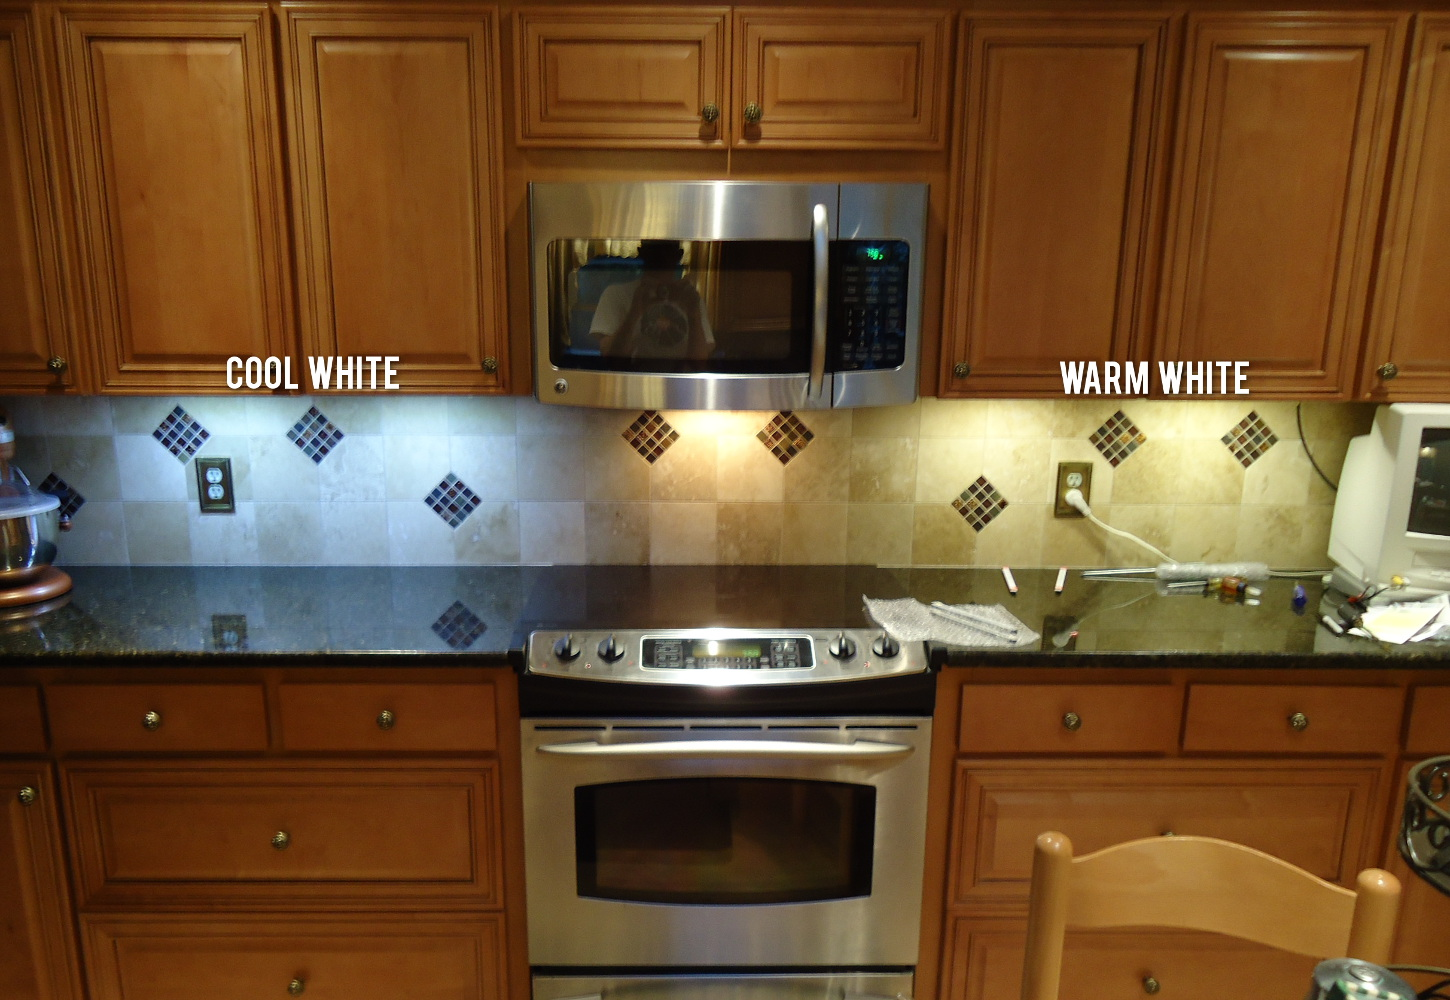 led light color temperature warm vs cool white led kitchen light All of our LED lights are offered in two main colors Cool White and Warm White